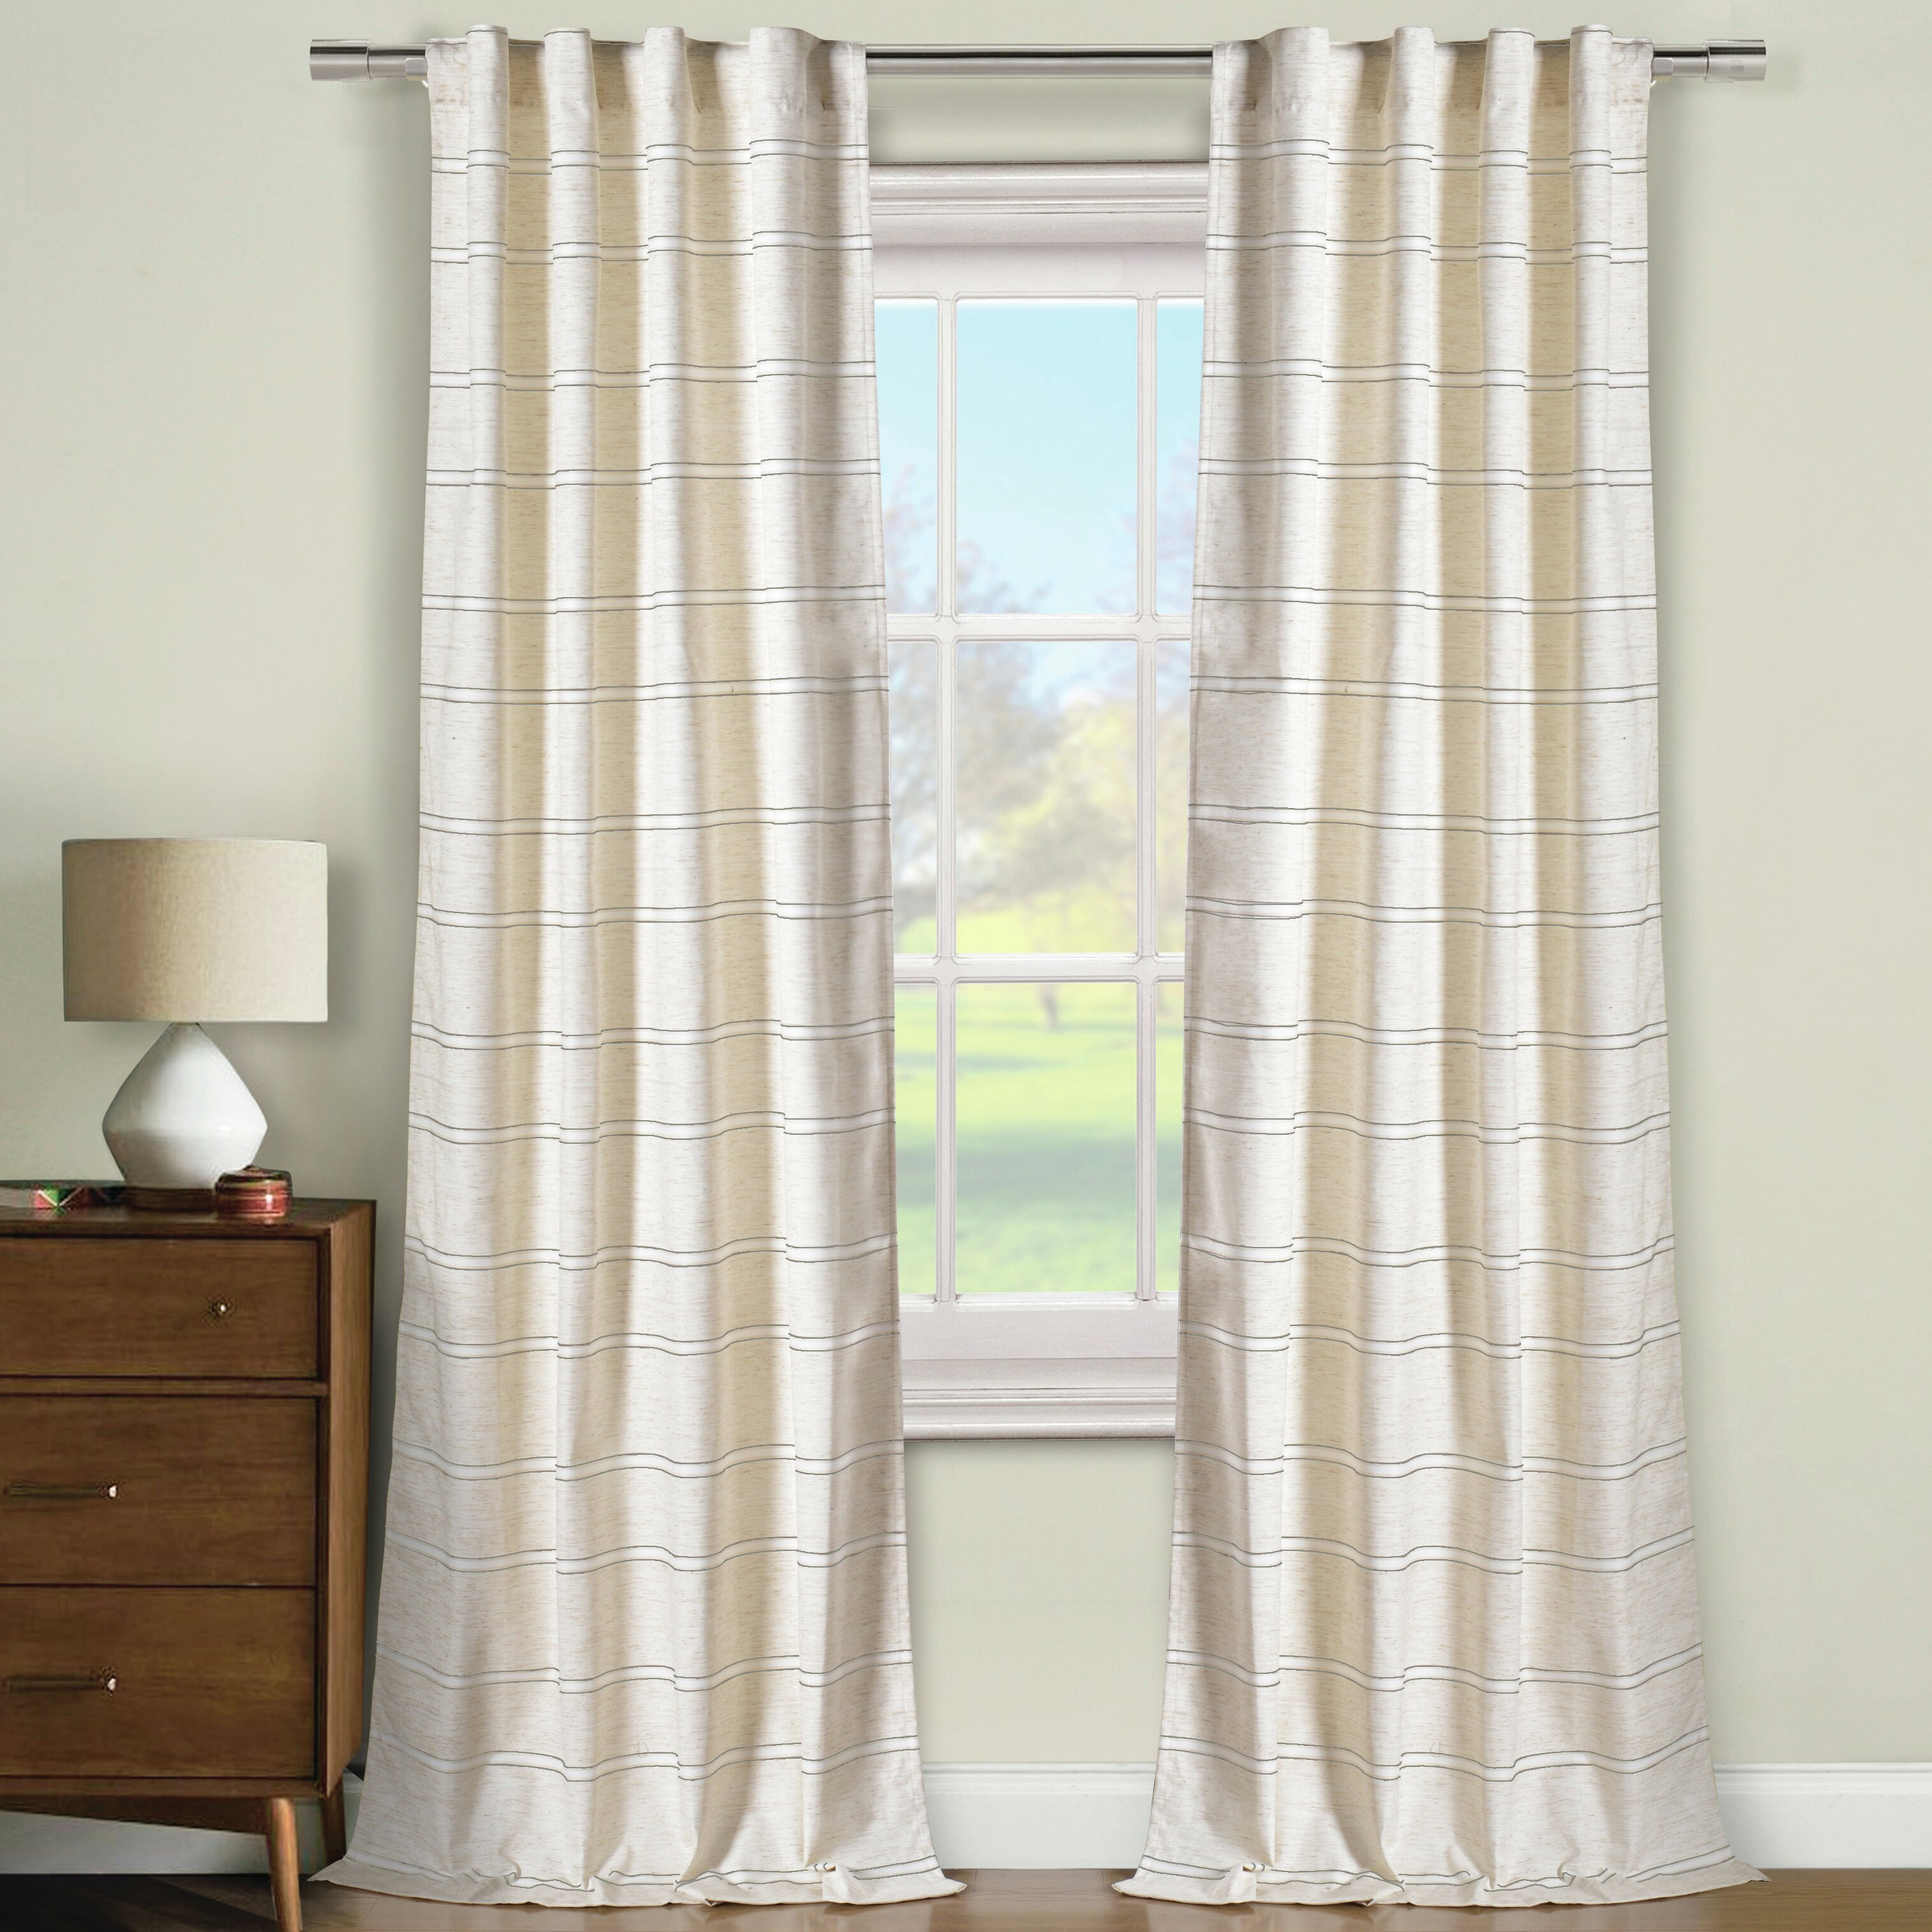 Curtain Styles For Long Narrow Windows A Colorful Alternative To Curtains Best 25 Small Window